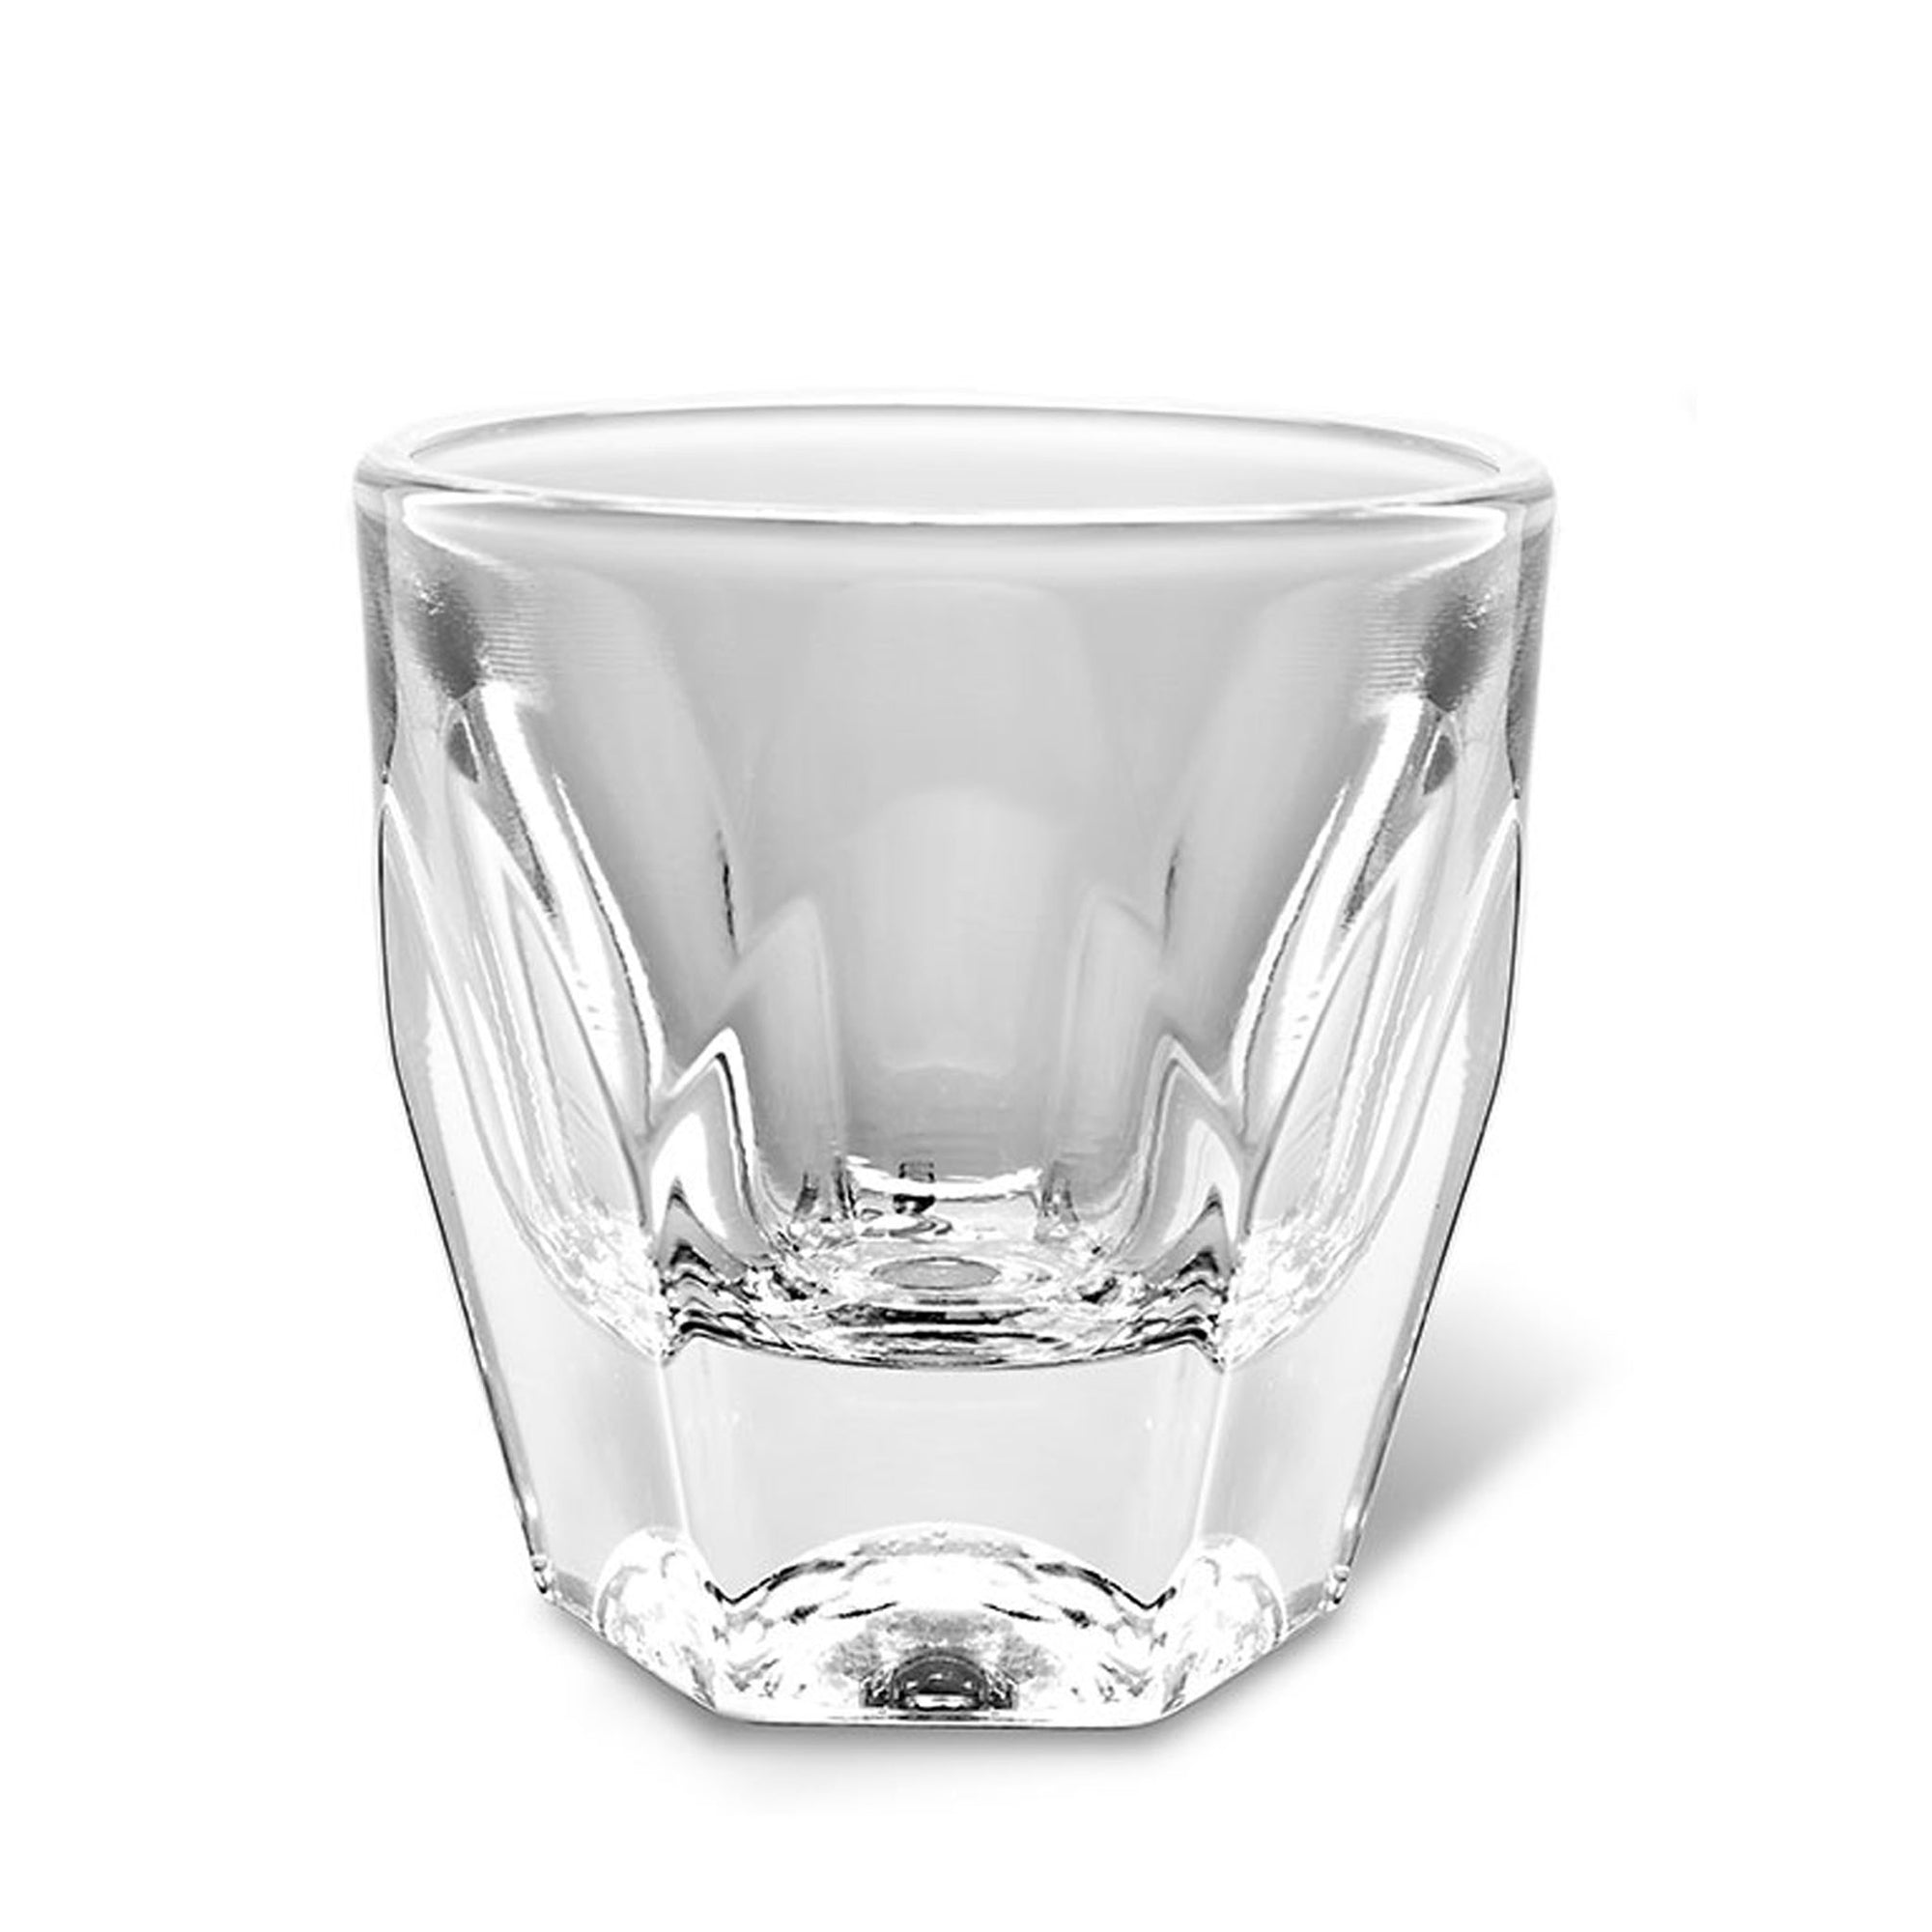 NN Vero Cortado Glass  - Clear 125ml - Espresso Gear